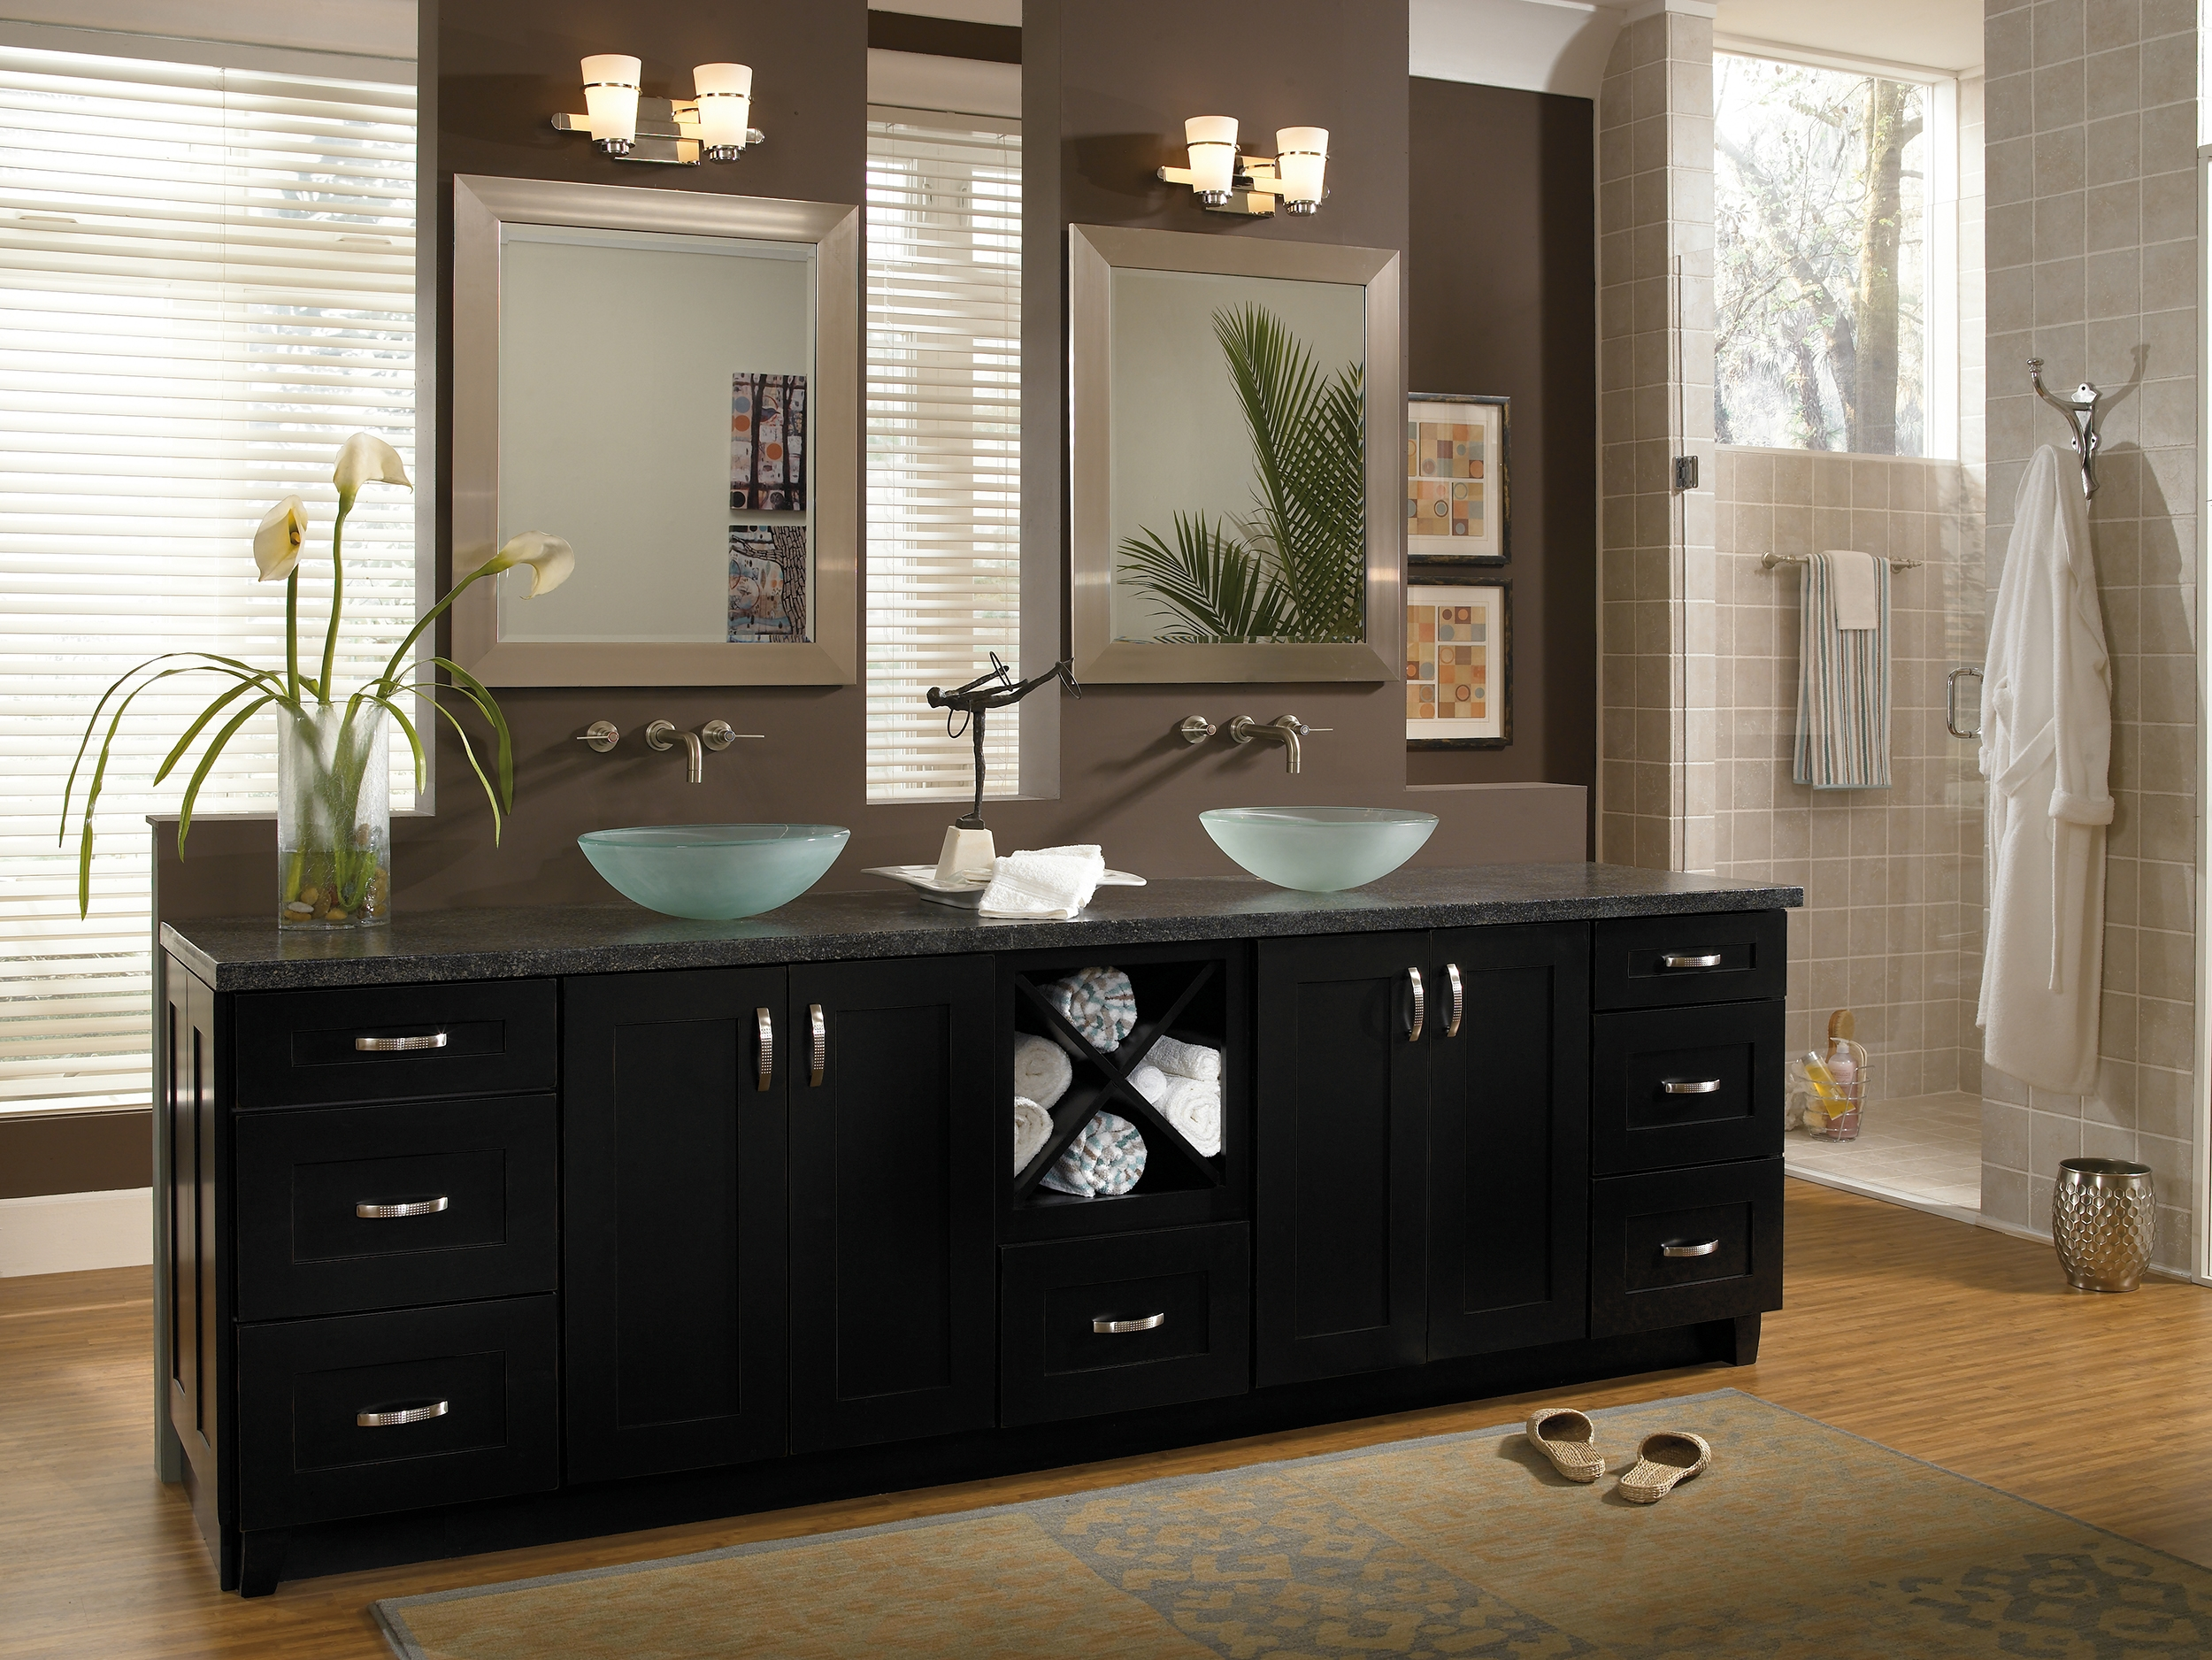 Diamond Cabinets For Bathroom